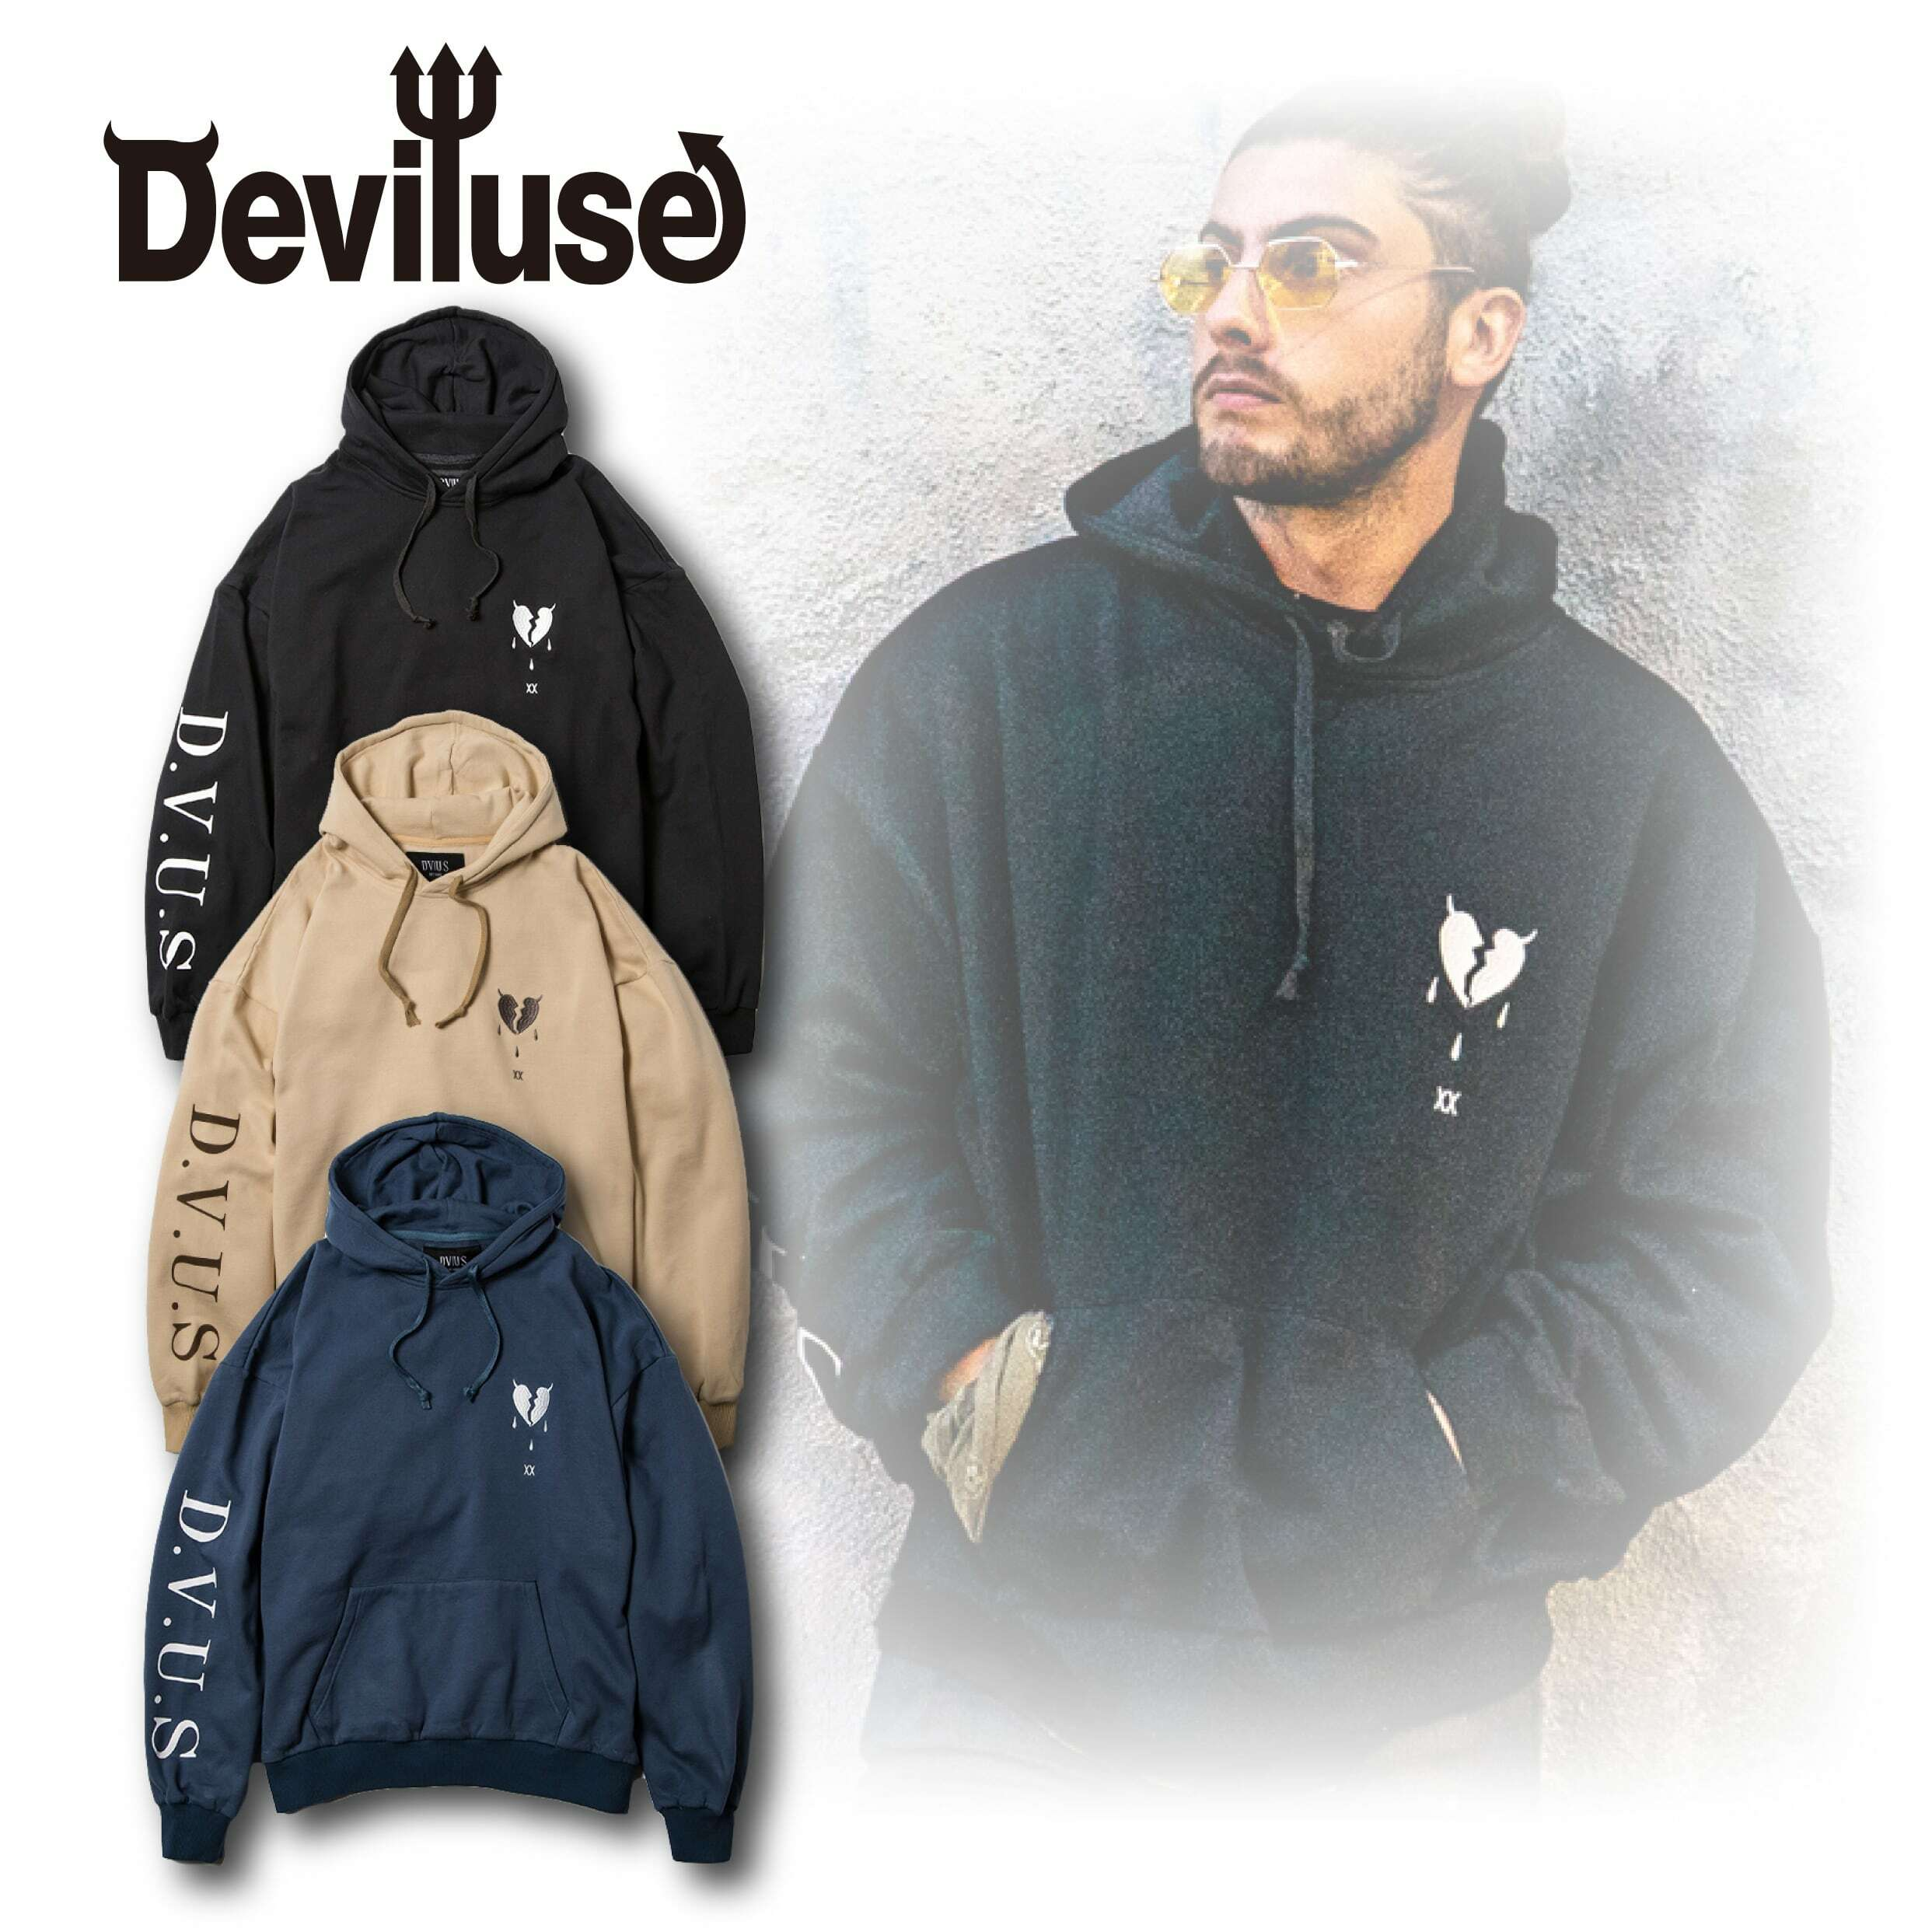 Deviluse(デビルユース) | Heartaches Pullover Hooded